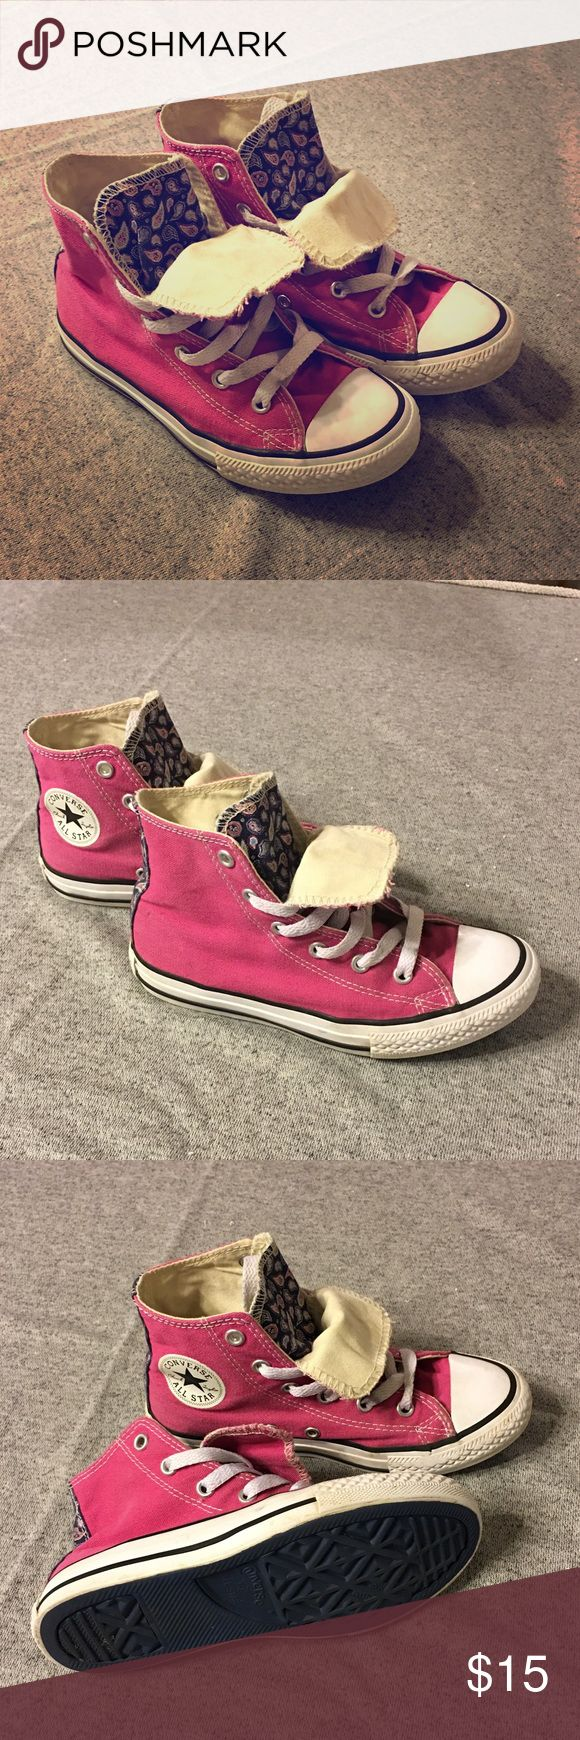 Girl's Converse Double Tongue High Top Girl's Converse High Top. Double tongue with paisley print.  GUC. Feel free to make an offer using the OFFER button. Bundle 2+ items to save! Thanks! Converse Shoes Sneakers